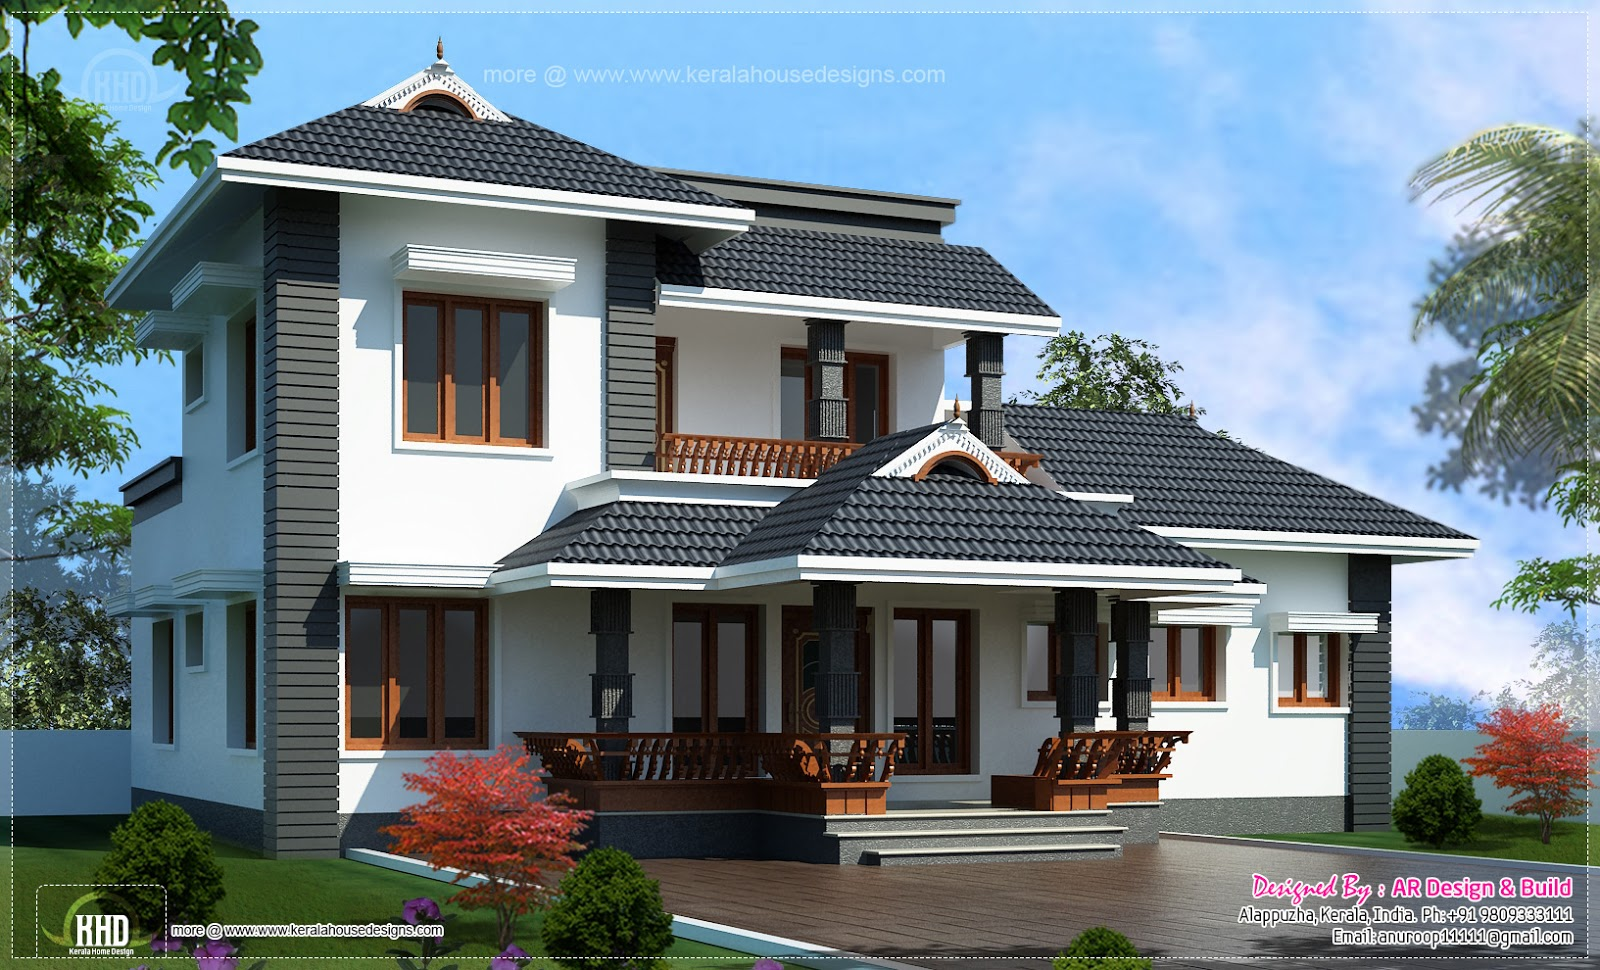 April 2013 kerala home design and floor plans for Home designs for kerala